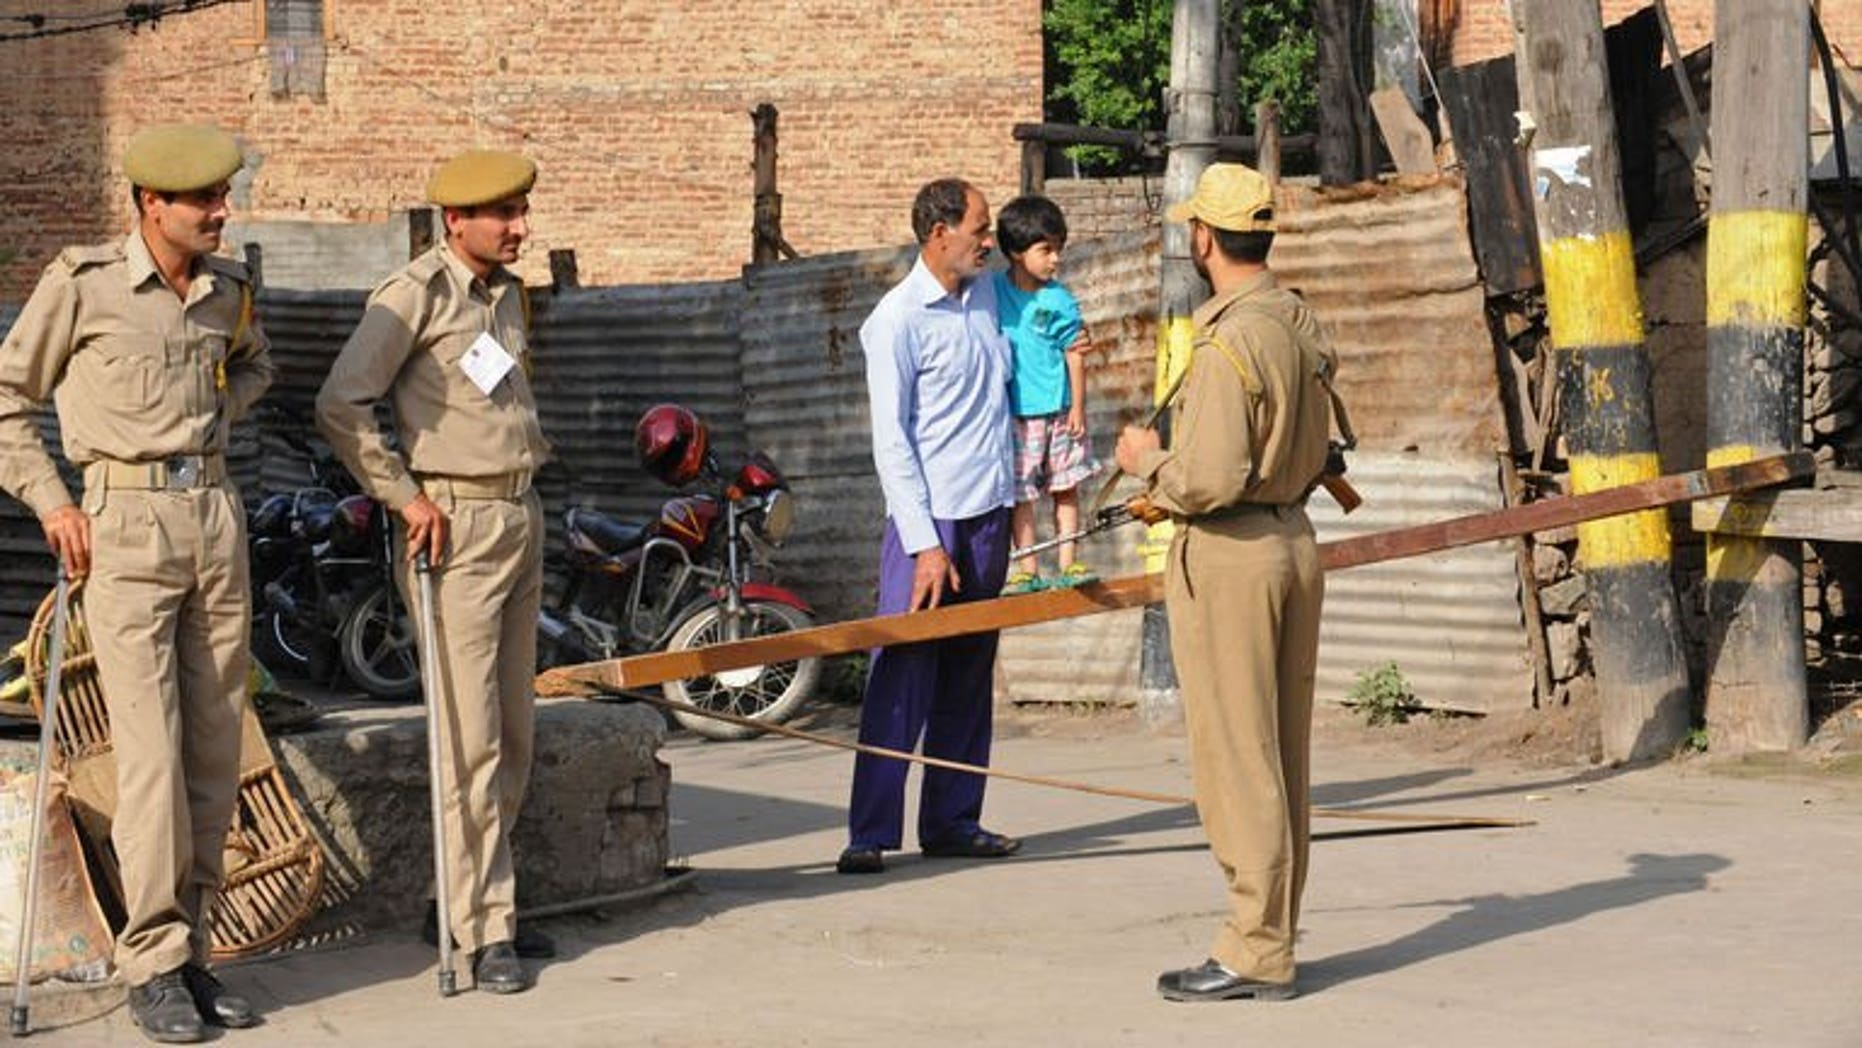 File picture shows a Kashmiri man and his child talking to Indian police during a strike called by separatists in Srinagar, Indian Kashmir on July 13, 2013. Suspected rebels killed a prisoner and wounded four police officers and a passer-by in Indian Kashmir when they lobbed a grenade at a police vehicle Wednesday, police said.